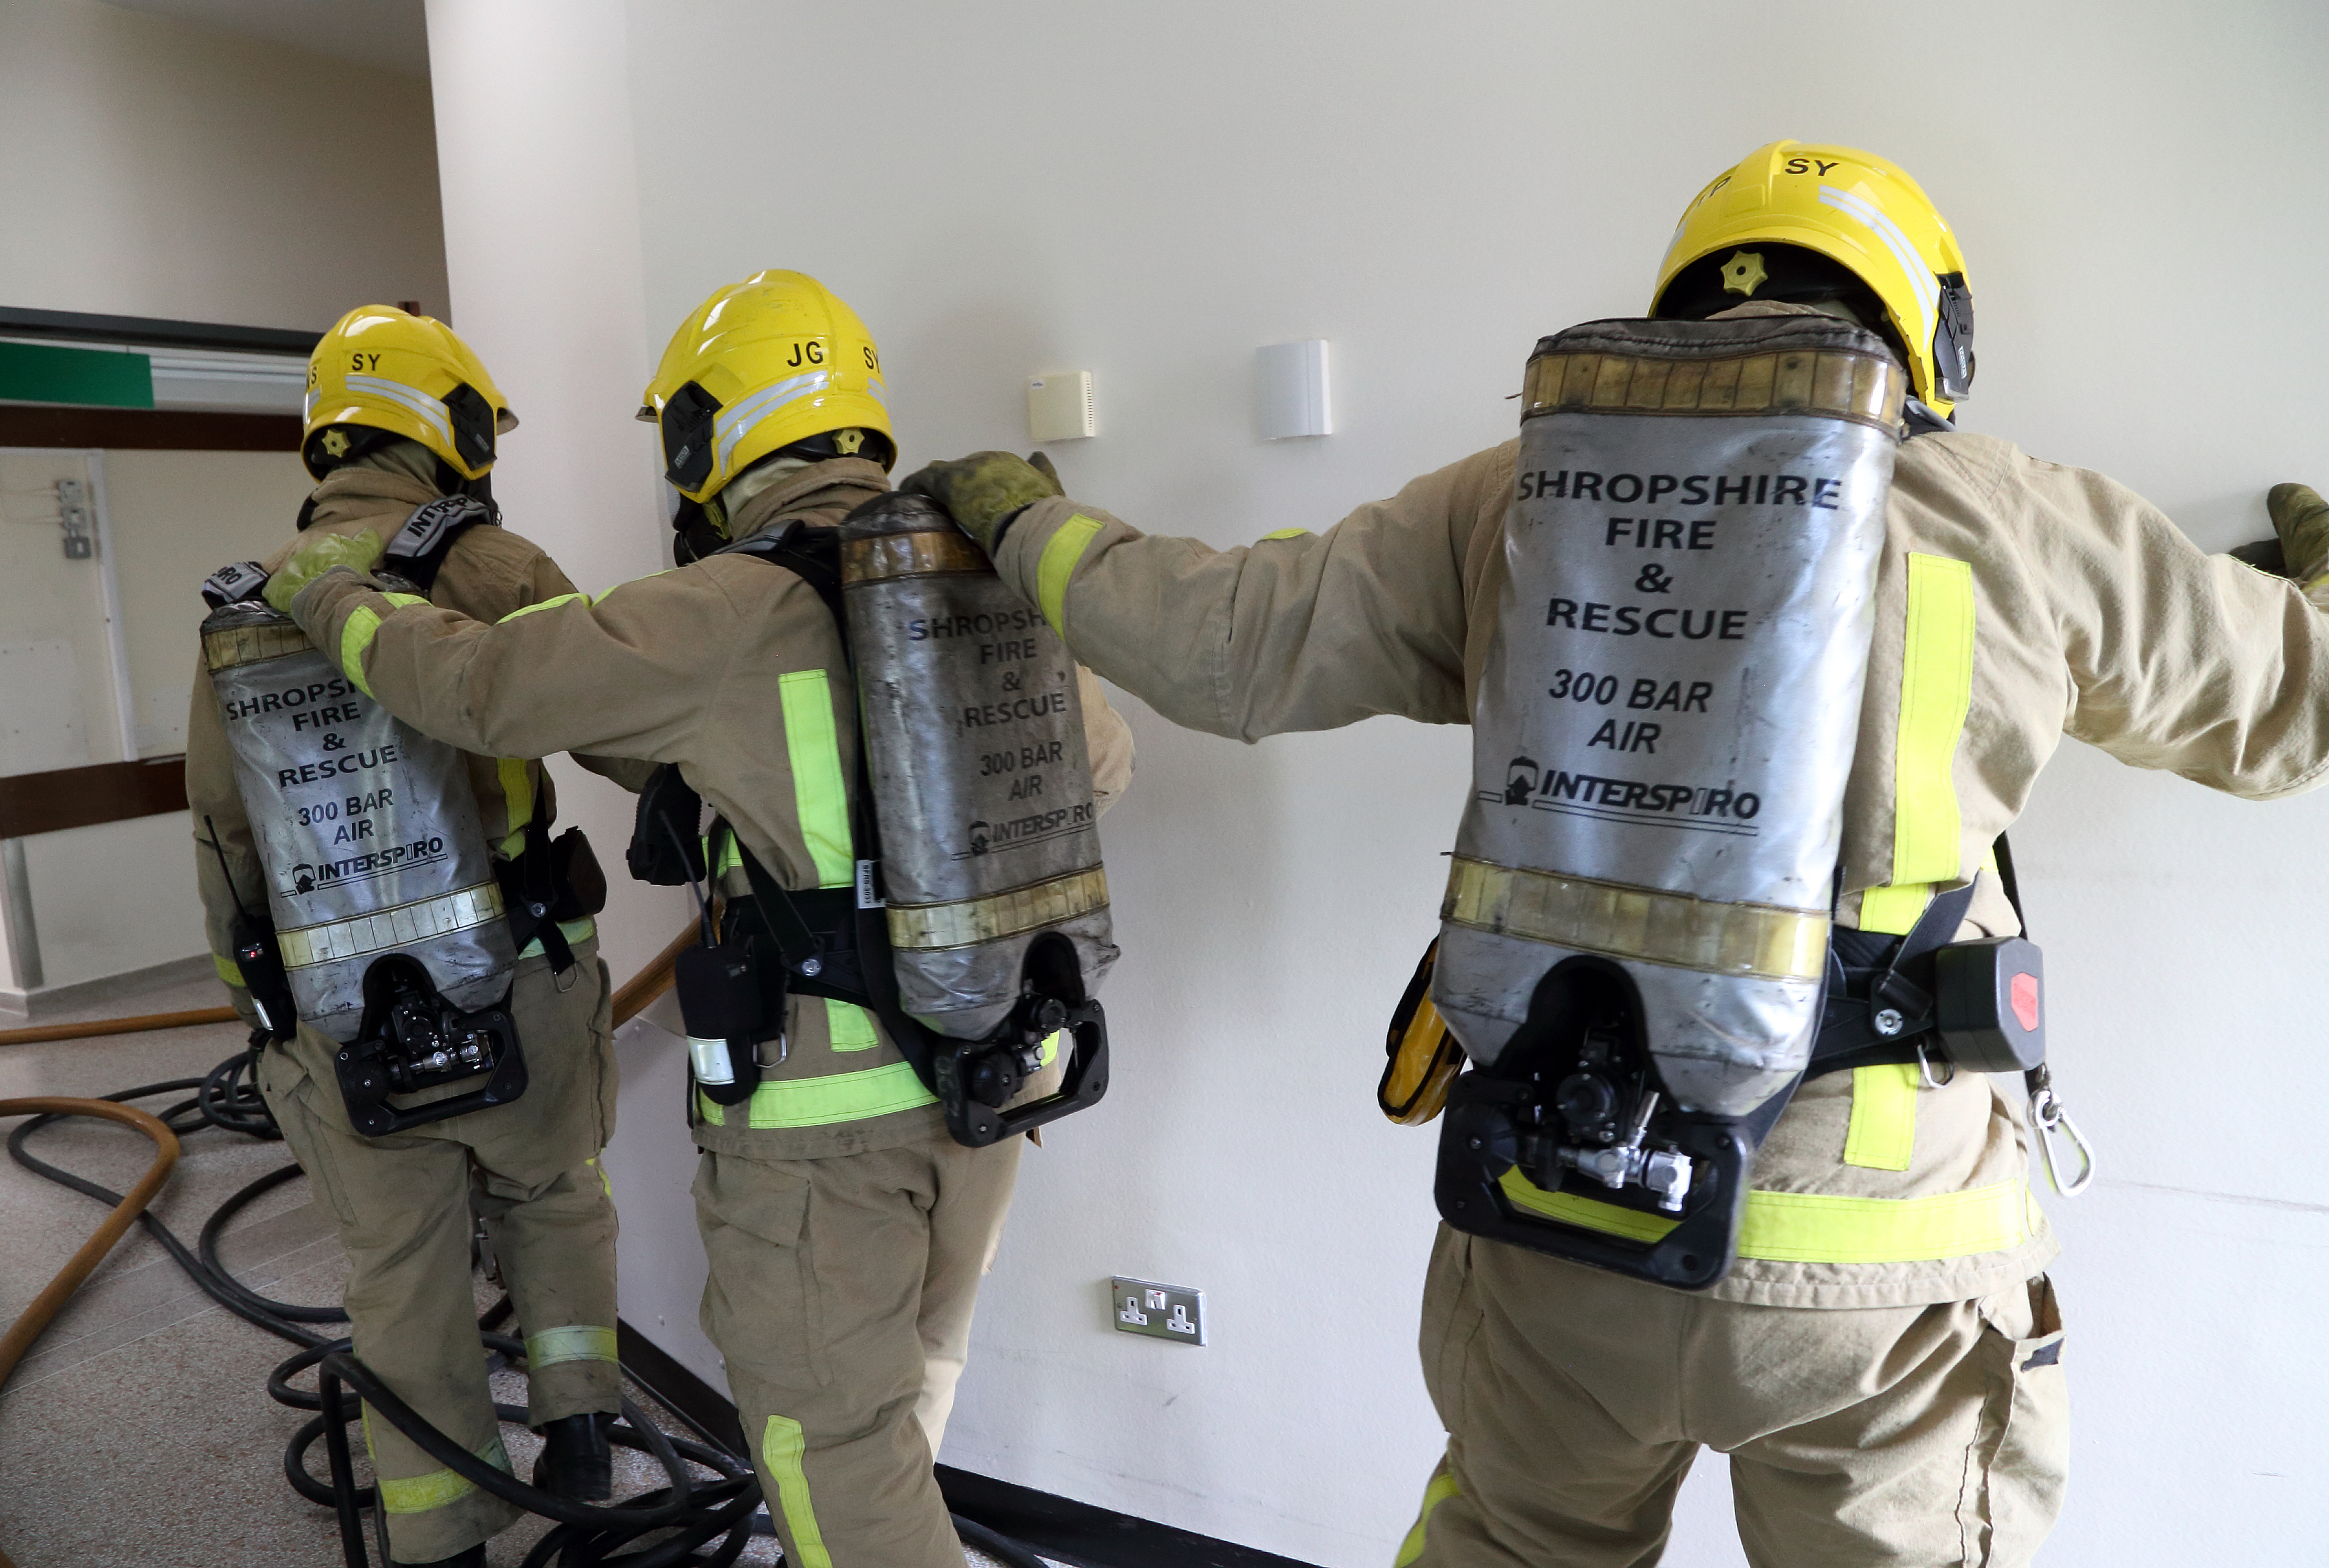 Shropshire firefighters train to search and rescue casualties in a training exercise at Royal Shrewsbury Hospital.